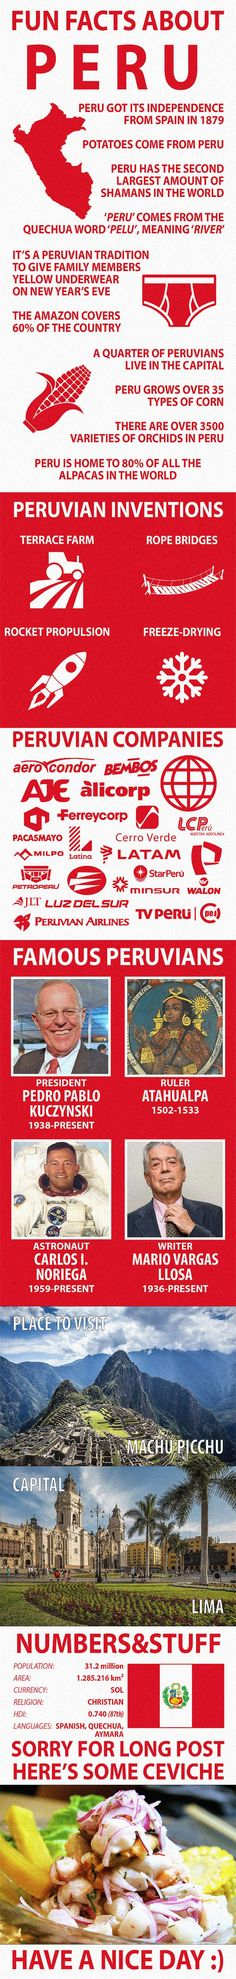 Fun Facts about Peru